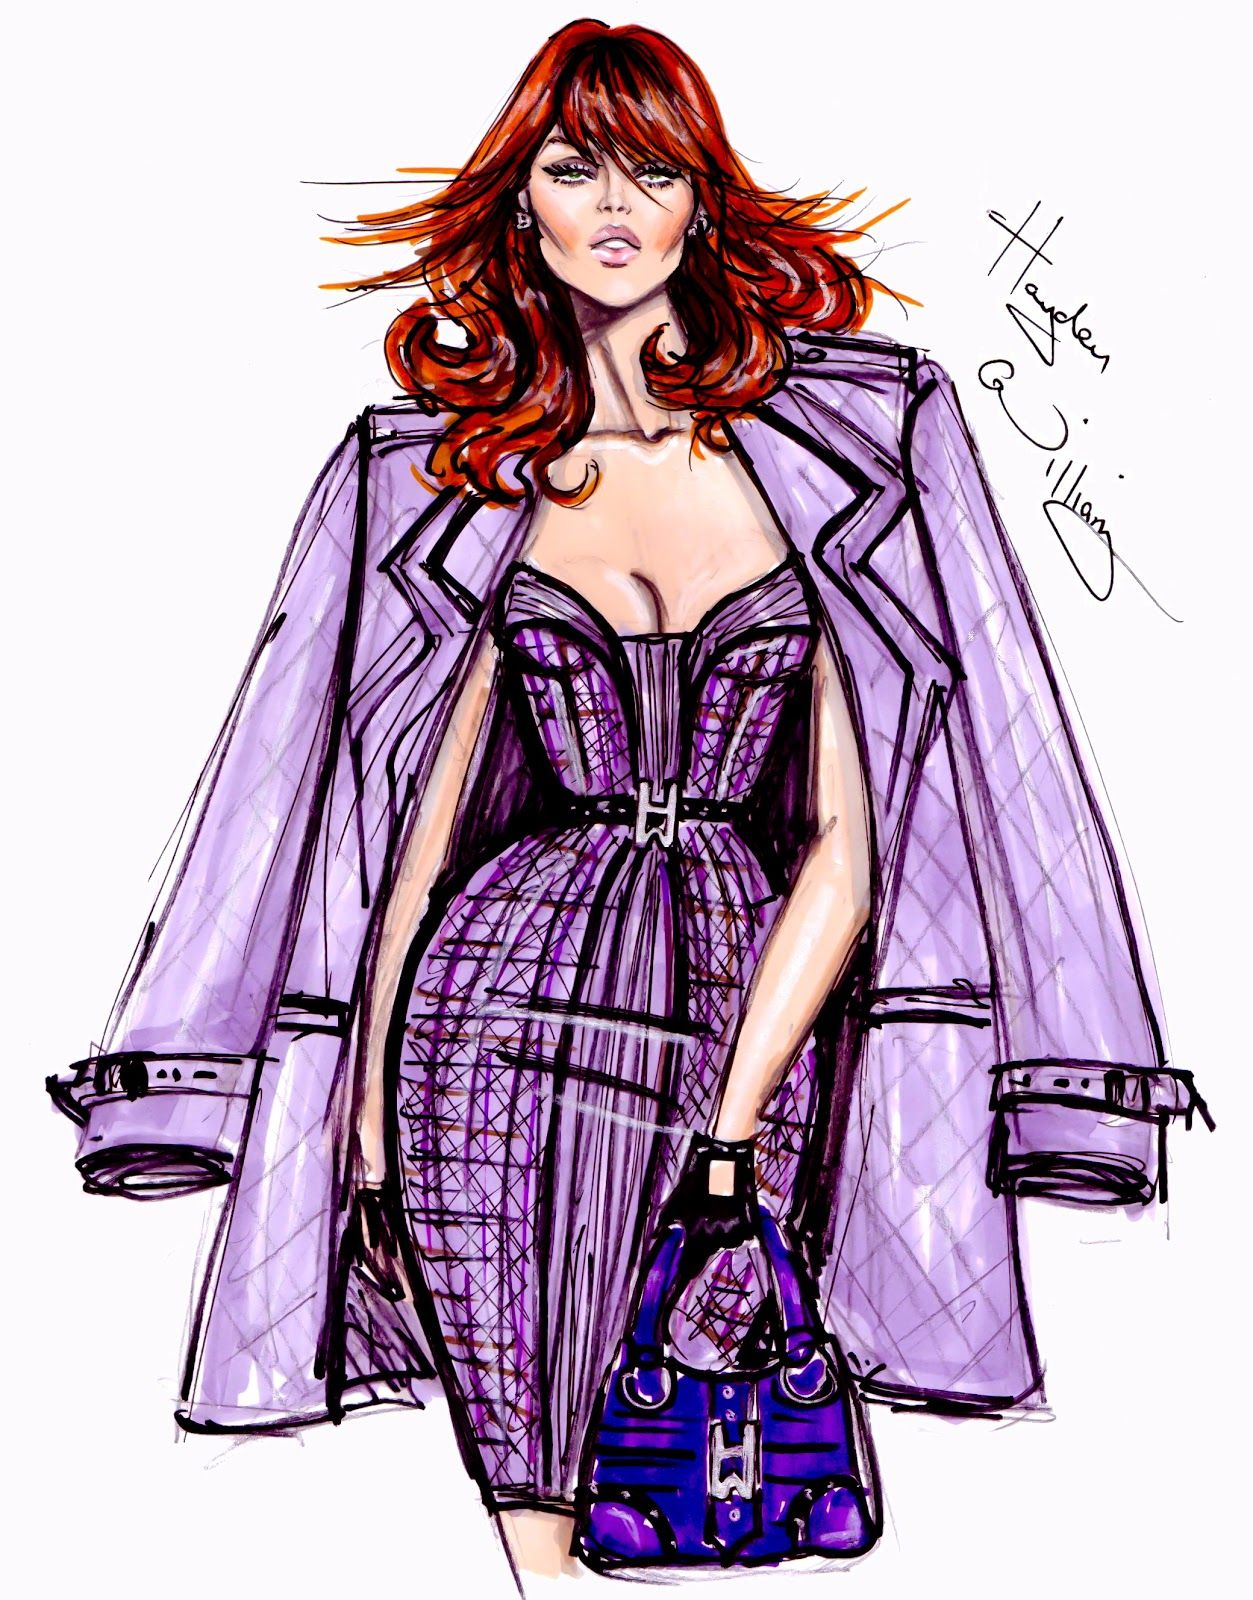 #Hayden Williams Fashion Illustrations #'Purple Reign' by Hayden Williams